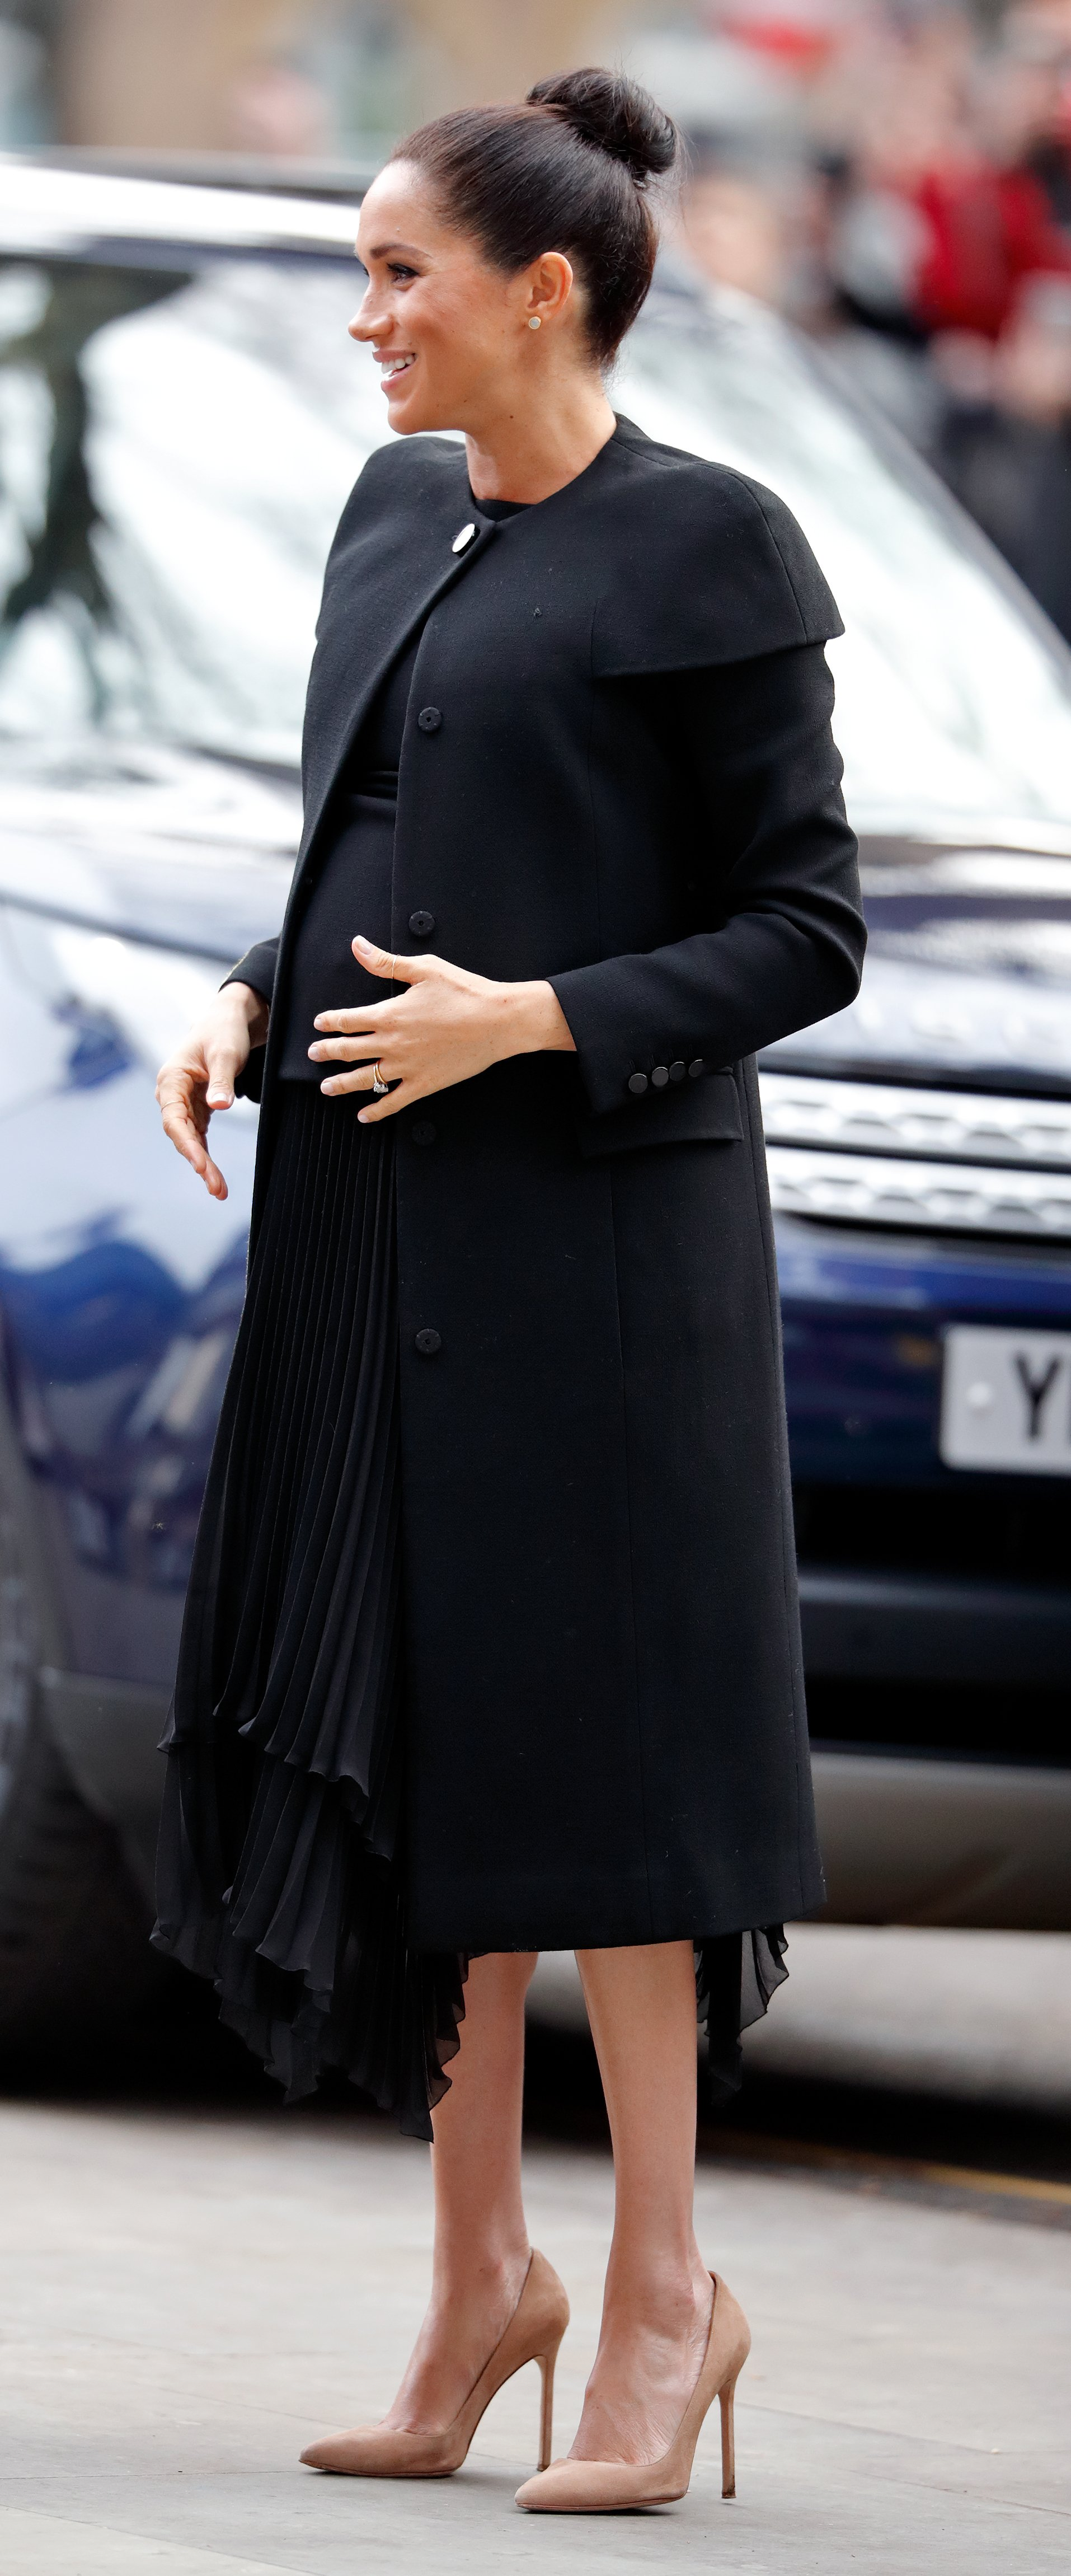 Meghan, Duchess of Sussex attends an engagement with the Association of Commonwealth Universities (ACU) at City, University of London on January 31, 2019 in London, England. | Source: Getty Images